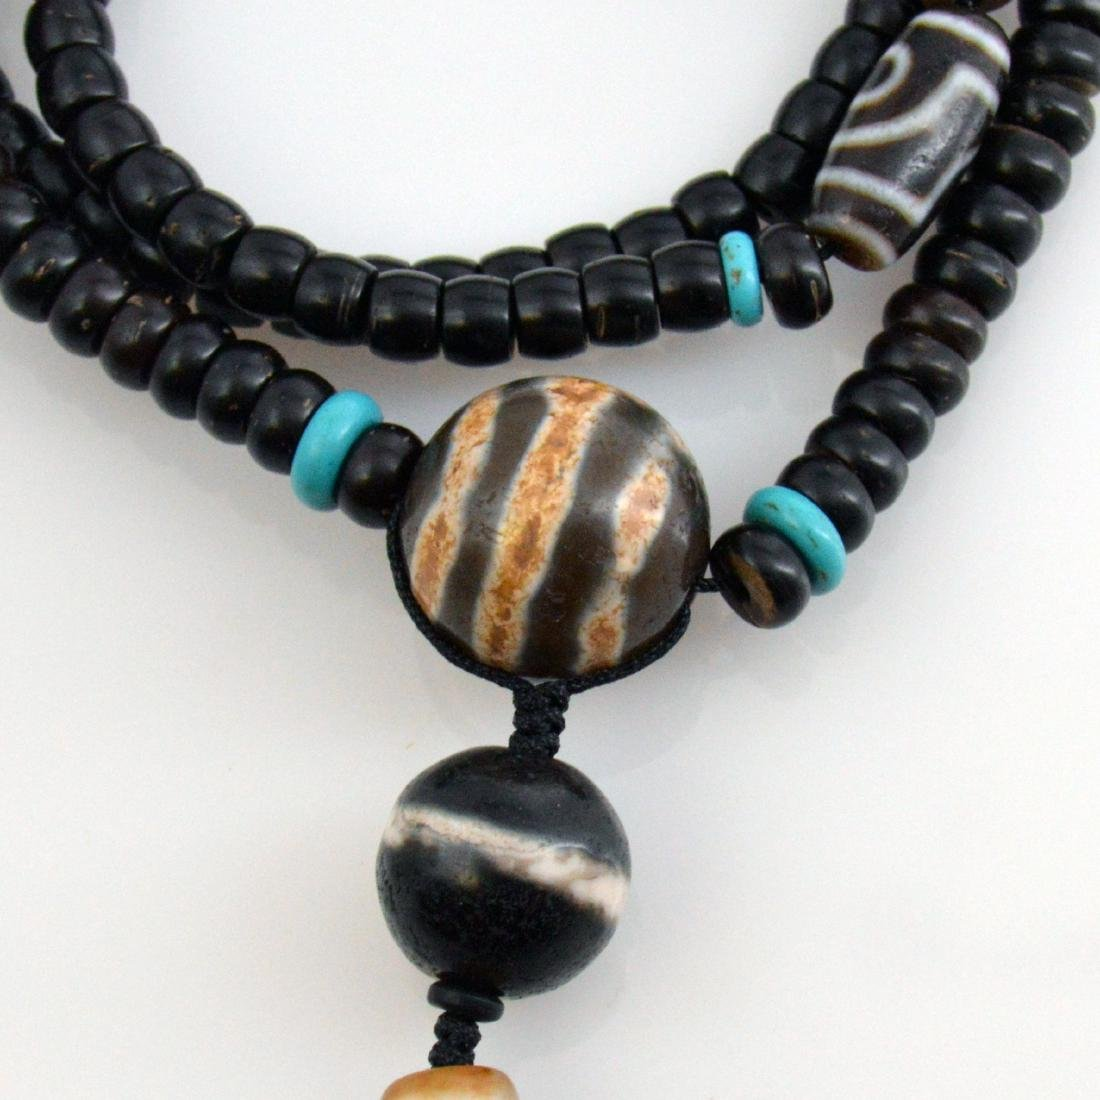 Twelve-Eyed Dzi Bead Pendant Necklace - 3